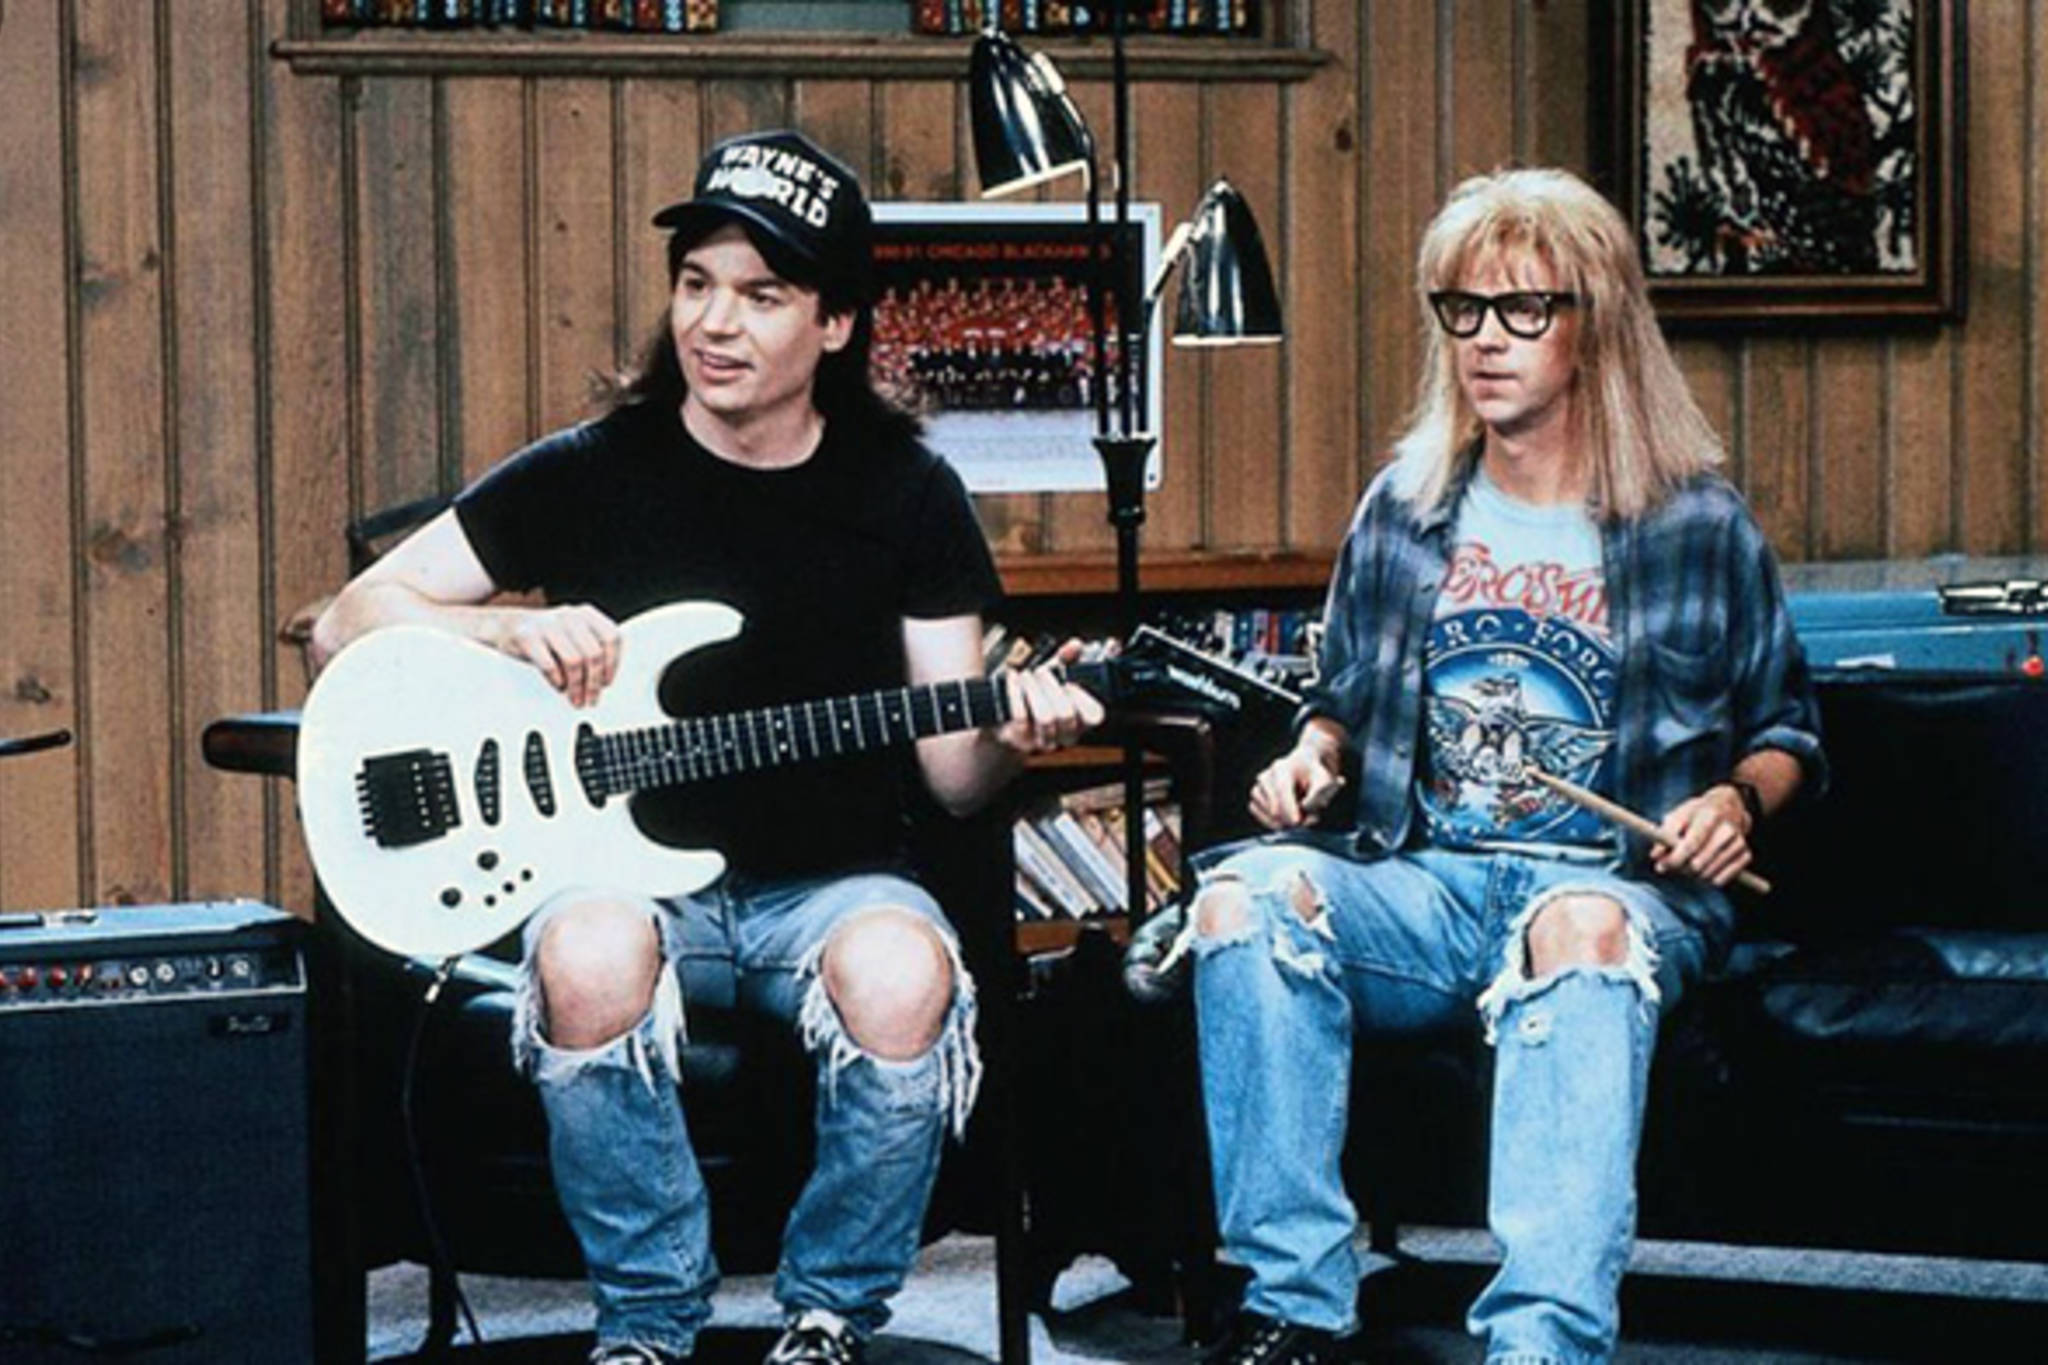 penelope spheeris waynes world and mark waters mean girls as two examples of comedy films